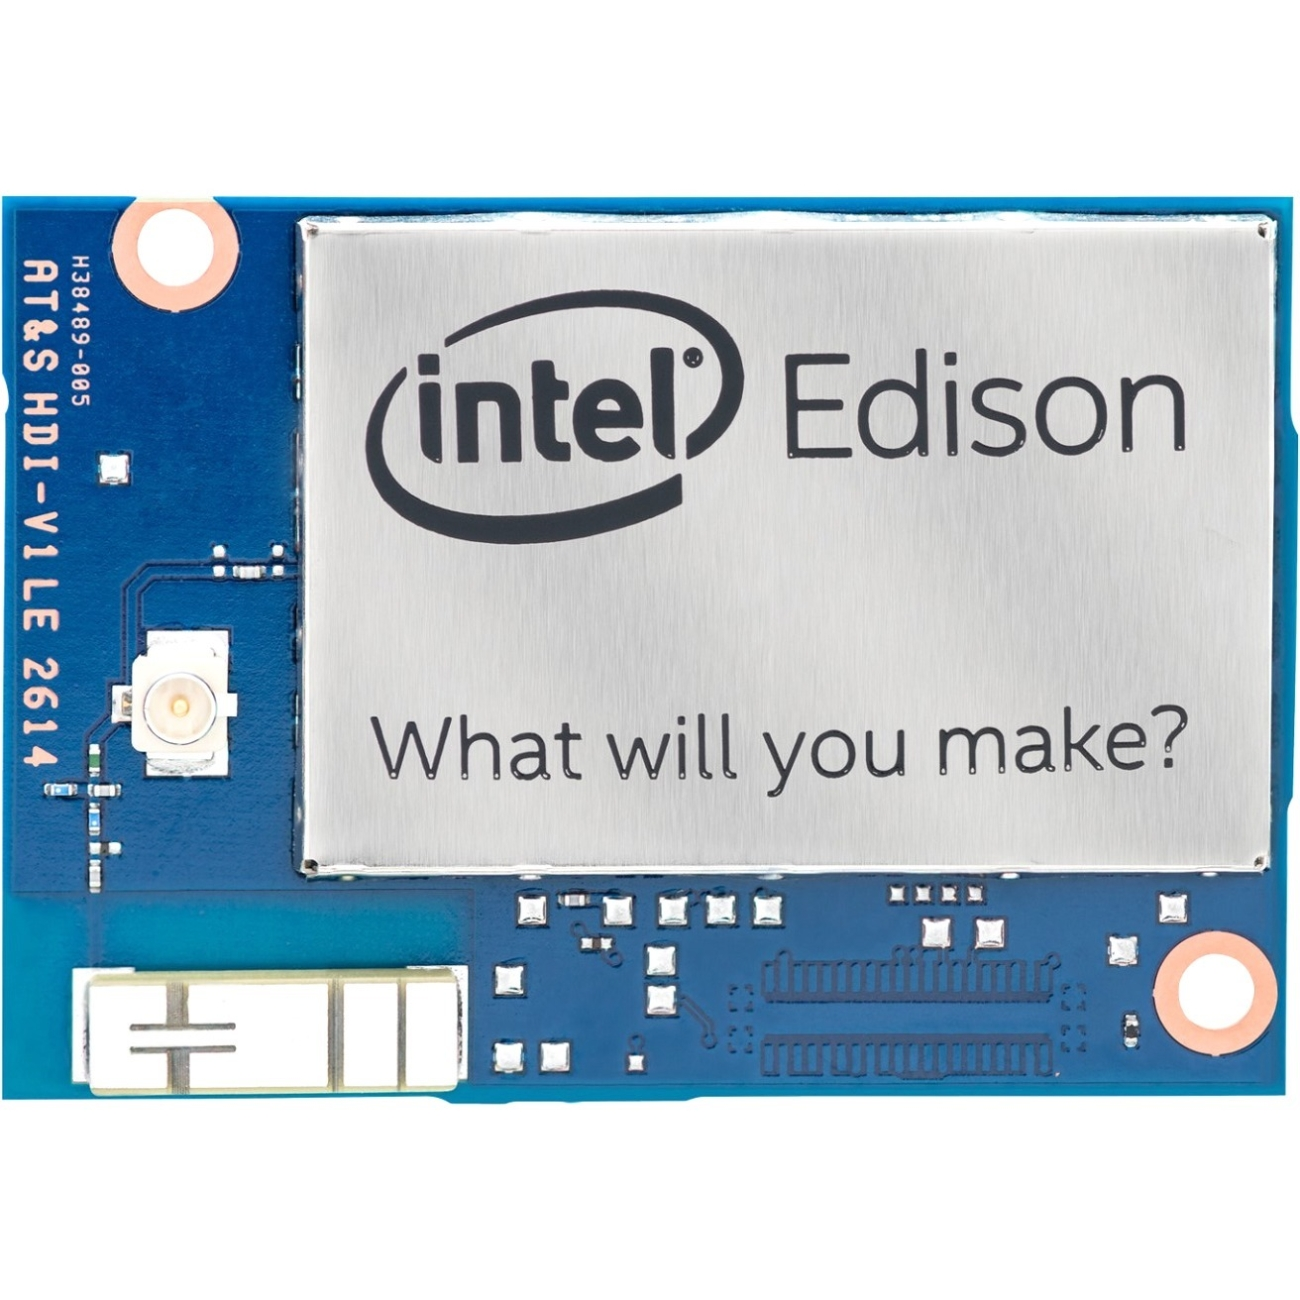 Intel Edison Single Board Computer